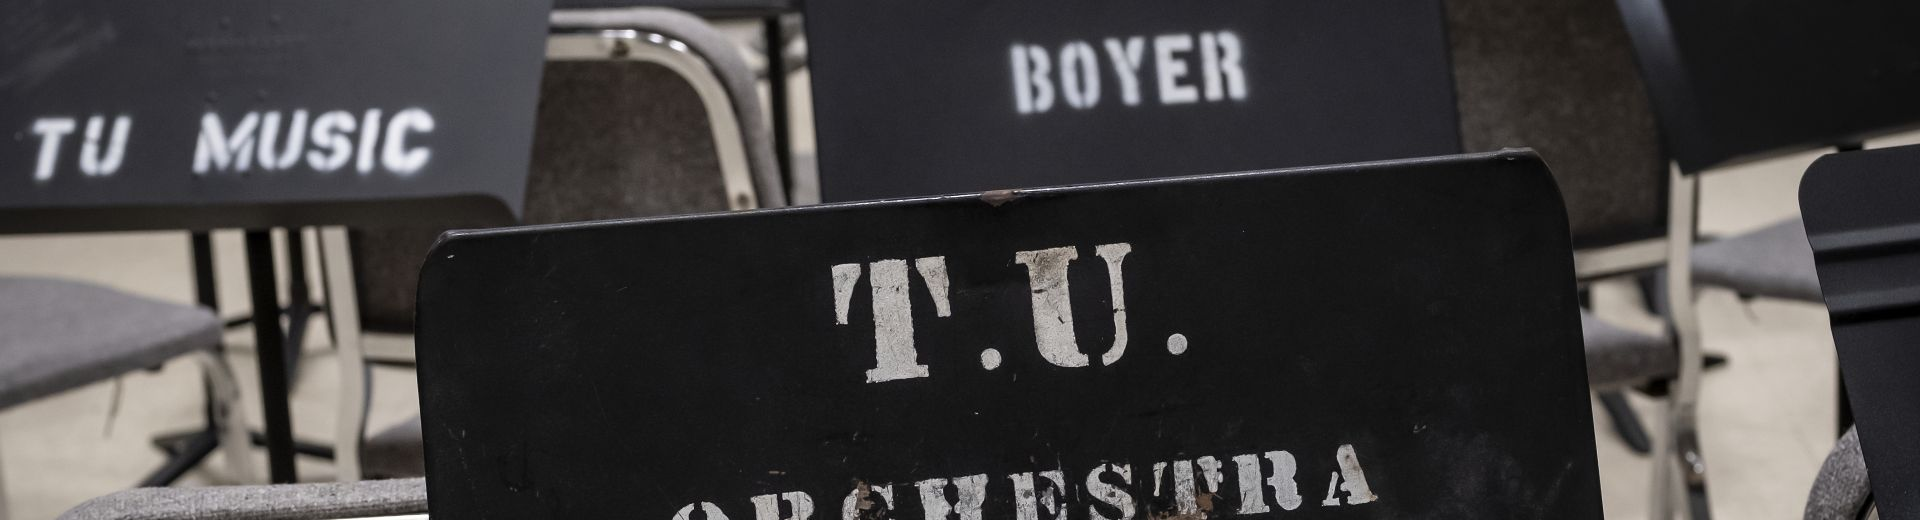 "Metal music stands stamped with the words ""TU Orchestra"" ""Boyer"" and ""TU Music"""